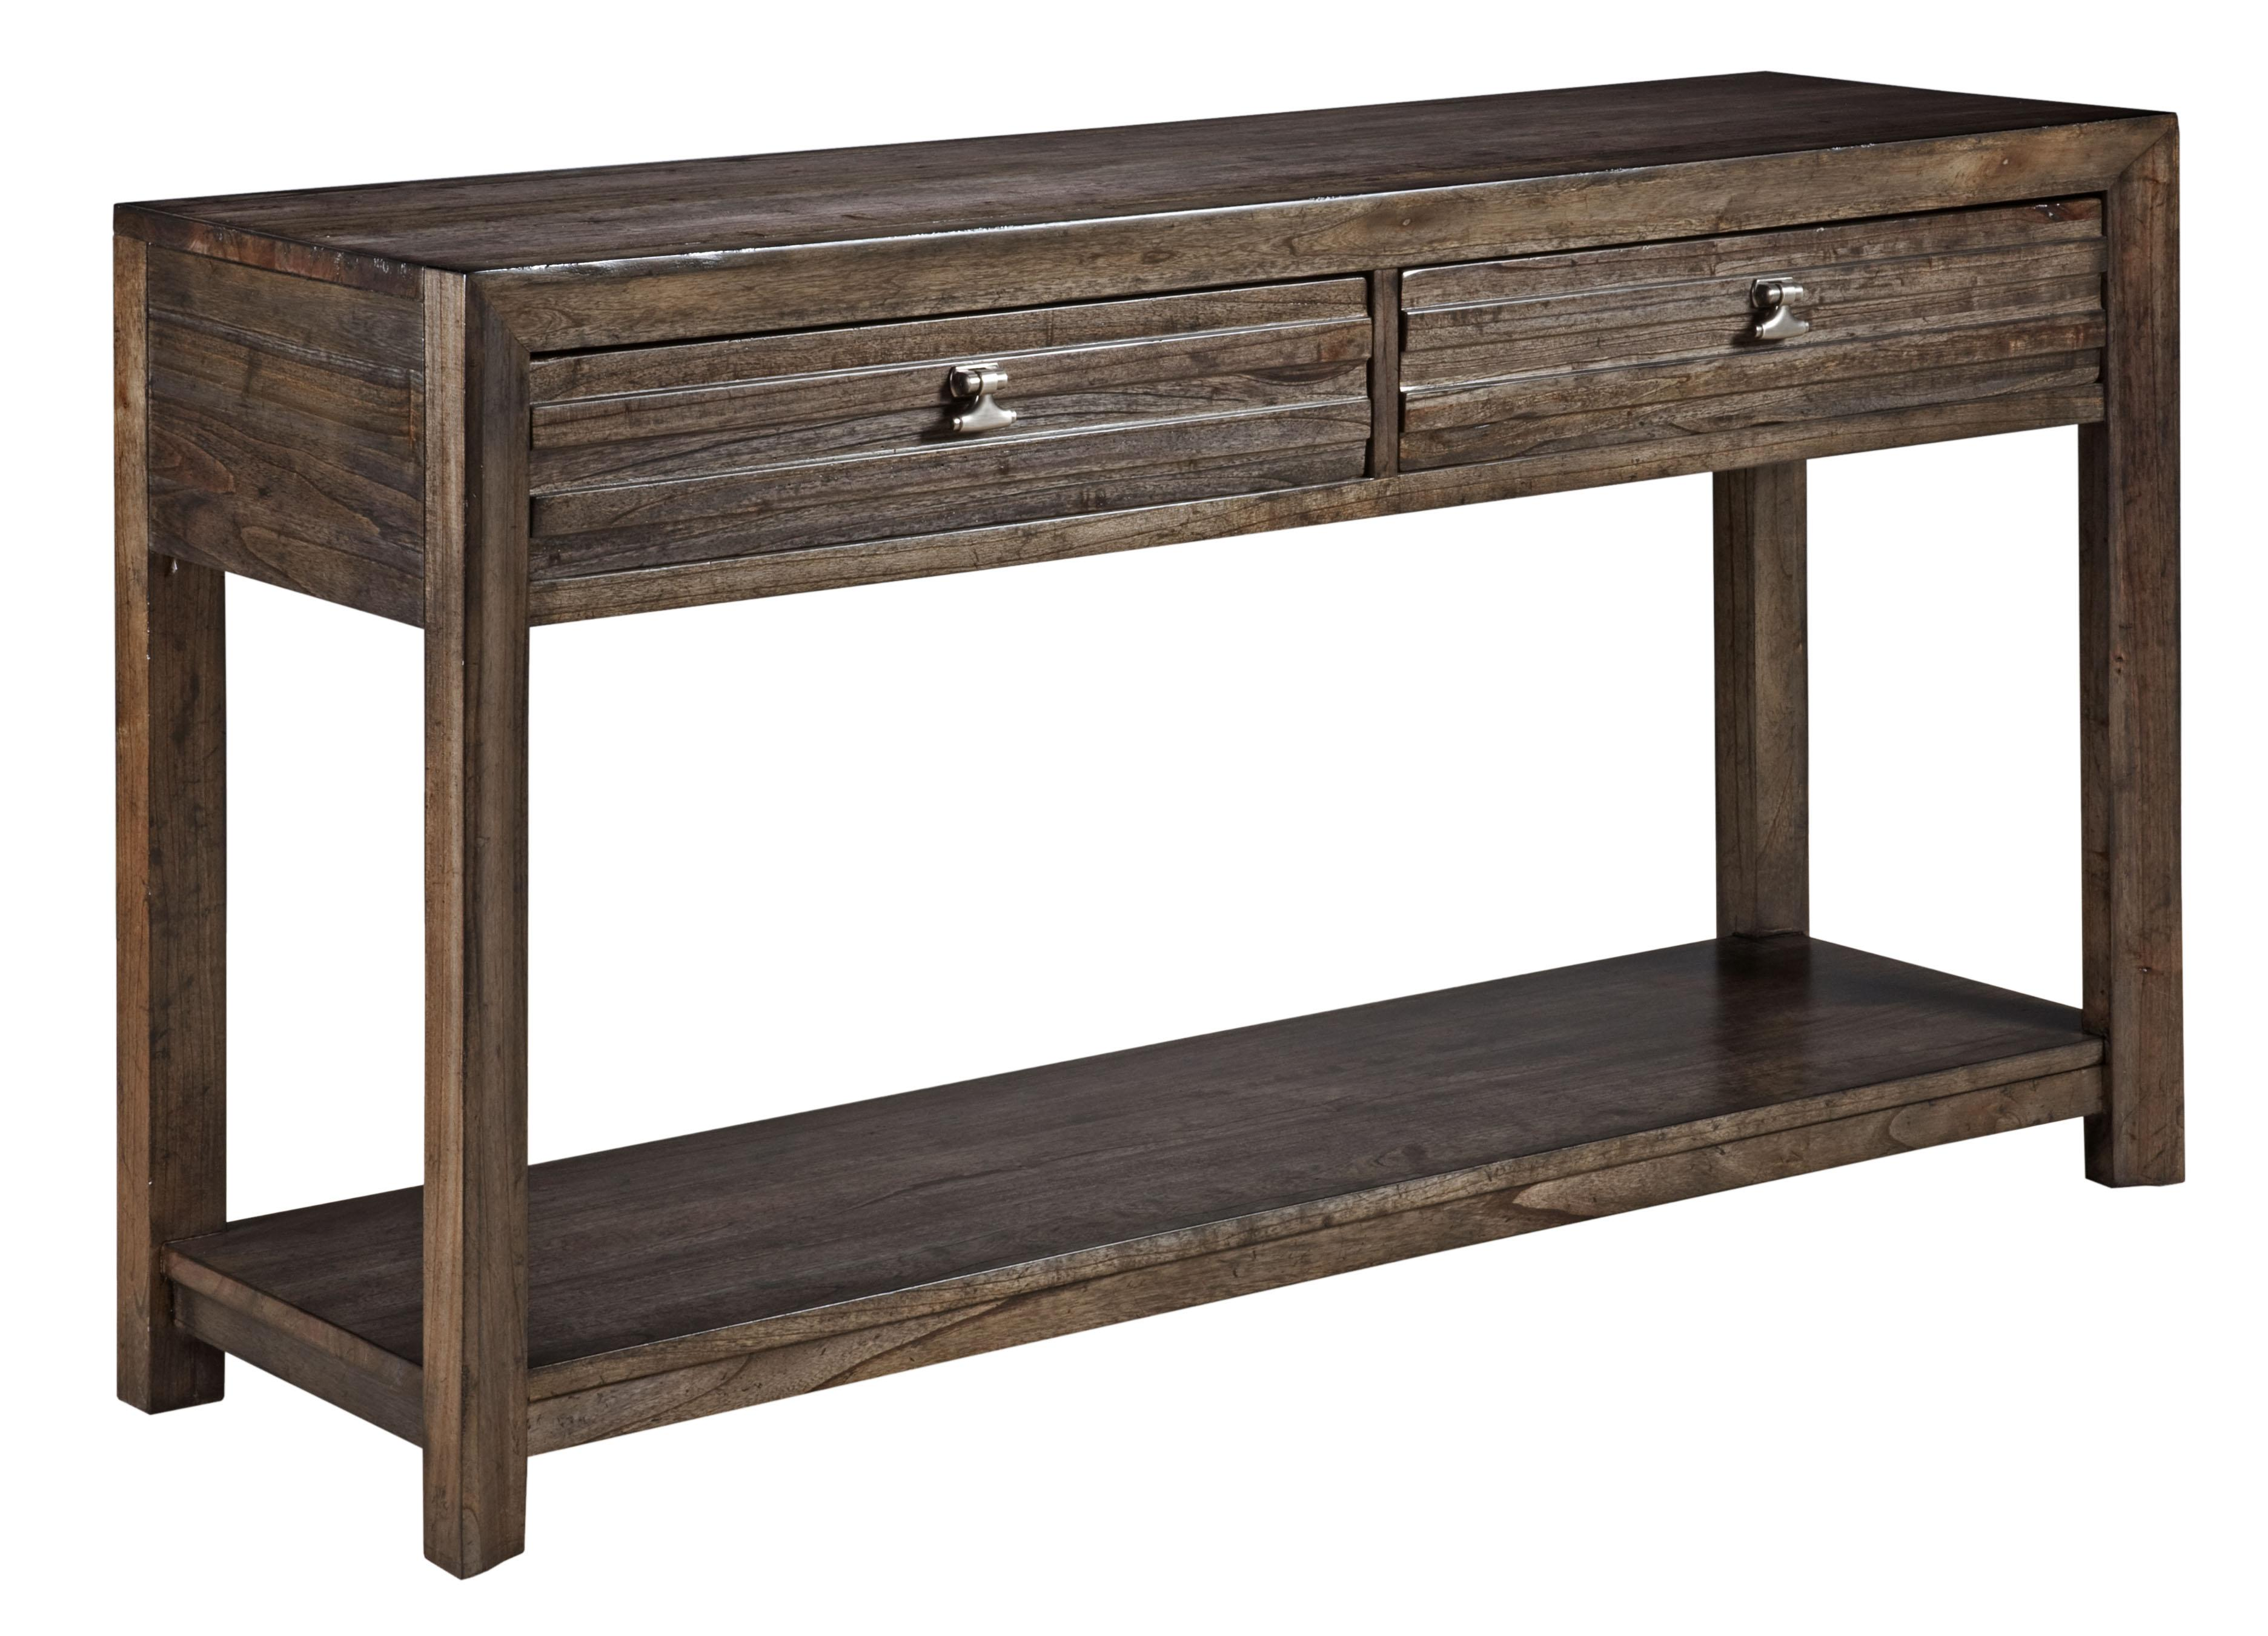 Kincaid Furniture Montreat 84 025 Contemporary Montreat Sofa Table With Grooved Mouldings And